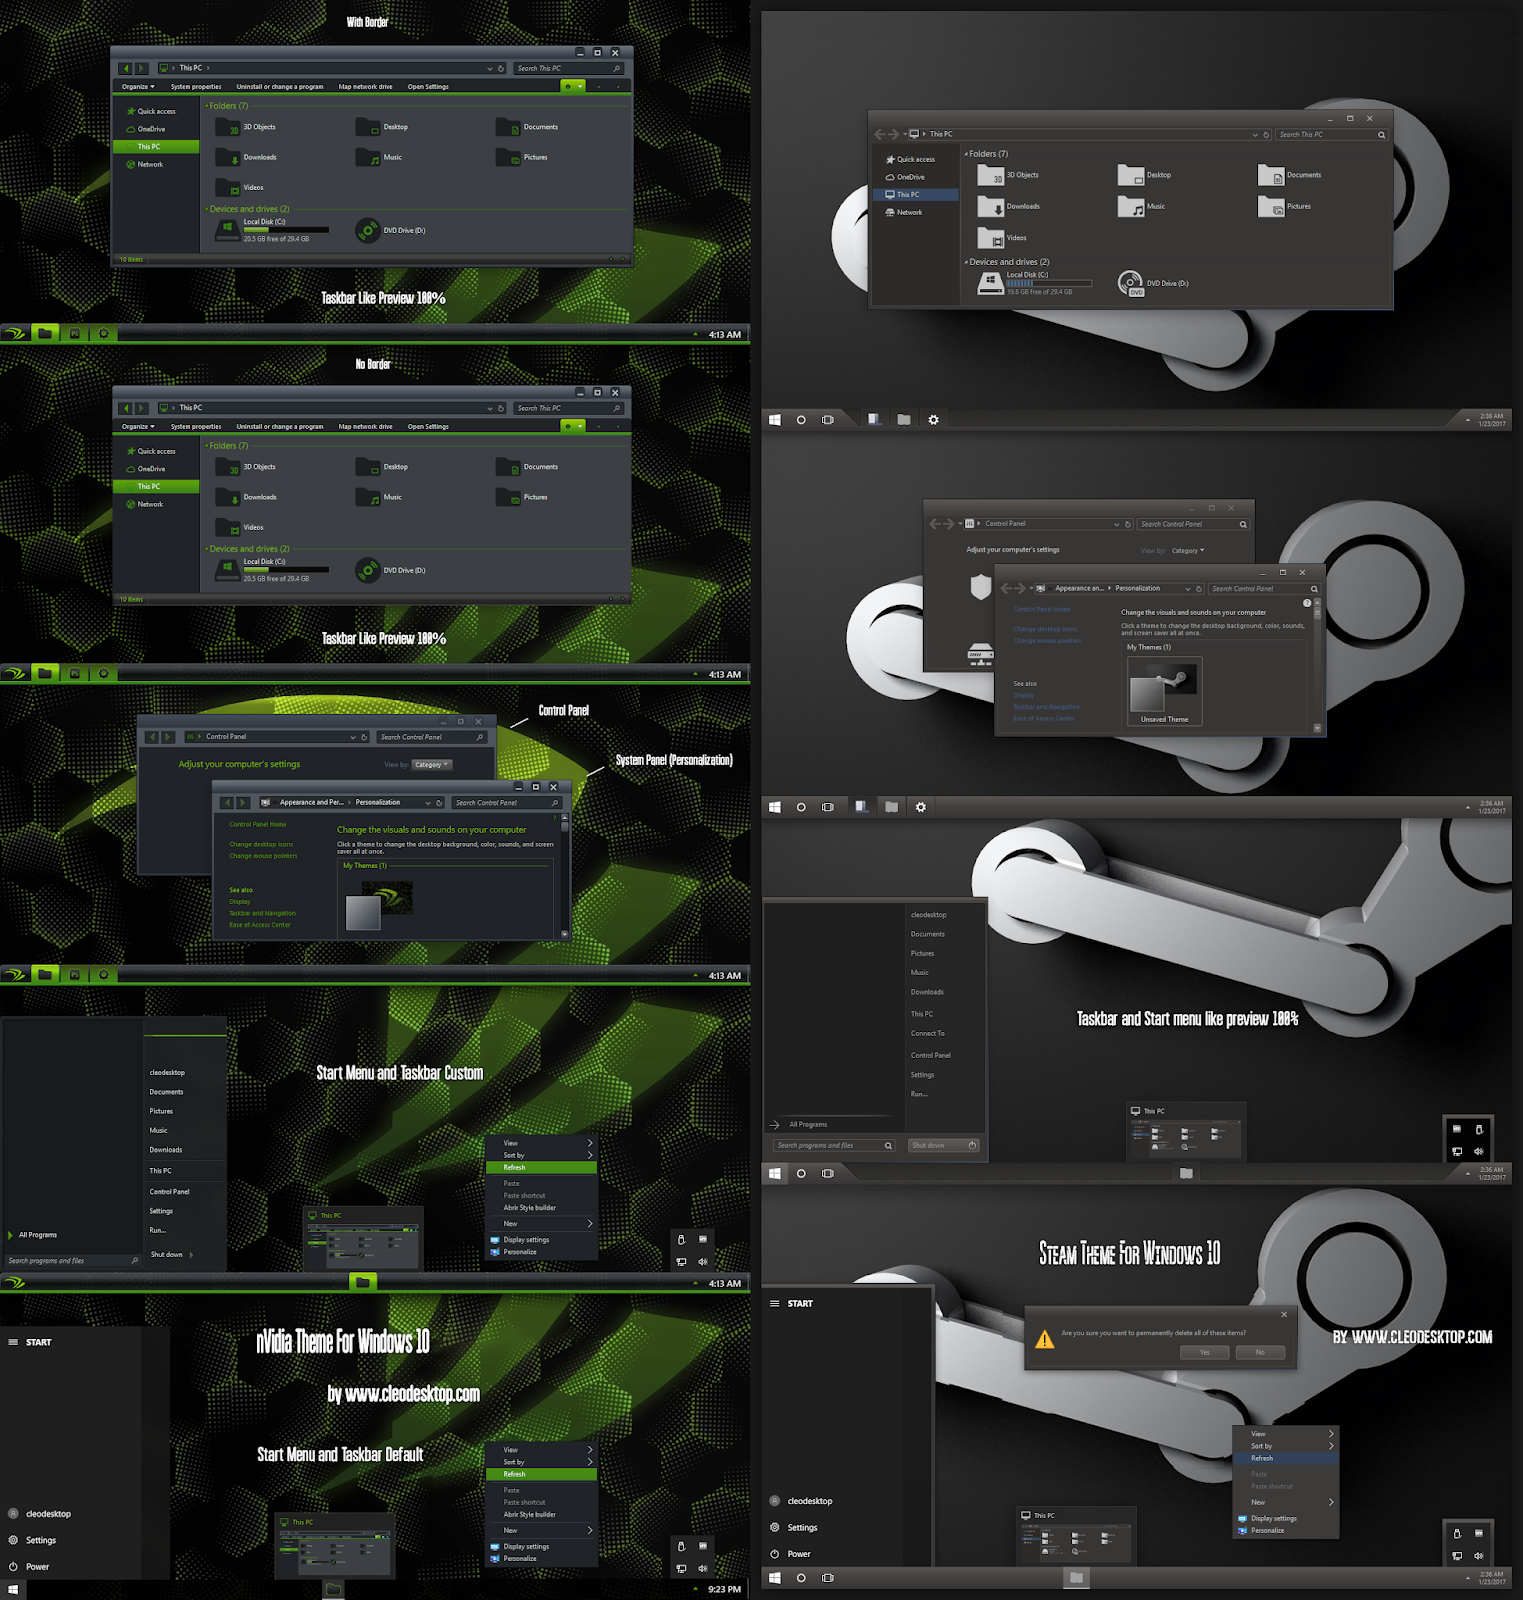 Steam And nVidia Theme For Windows10 2004